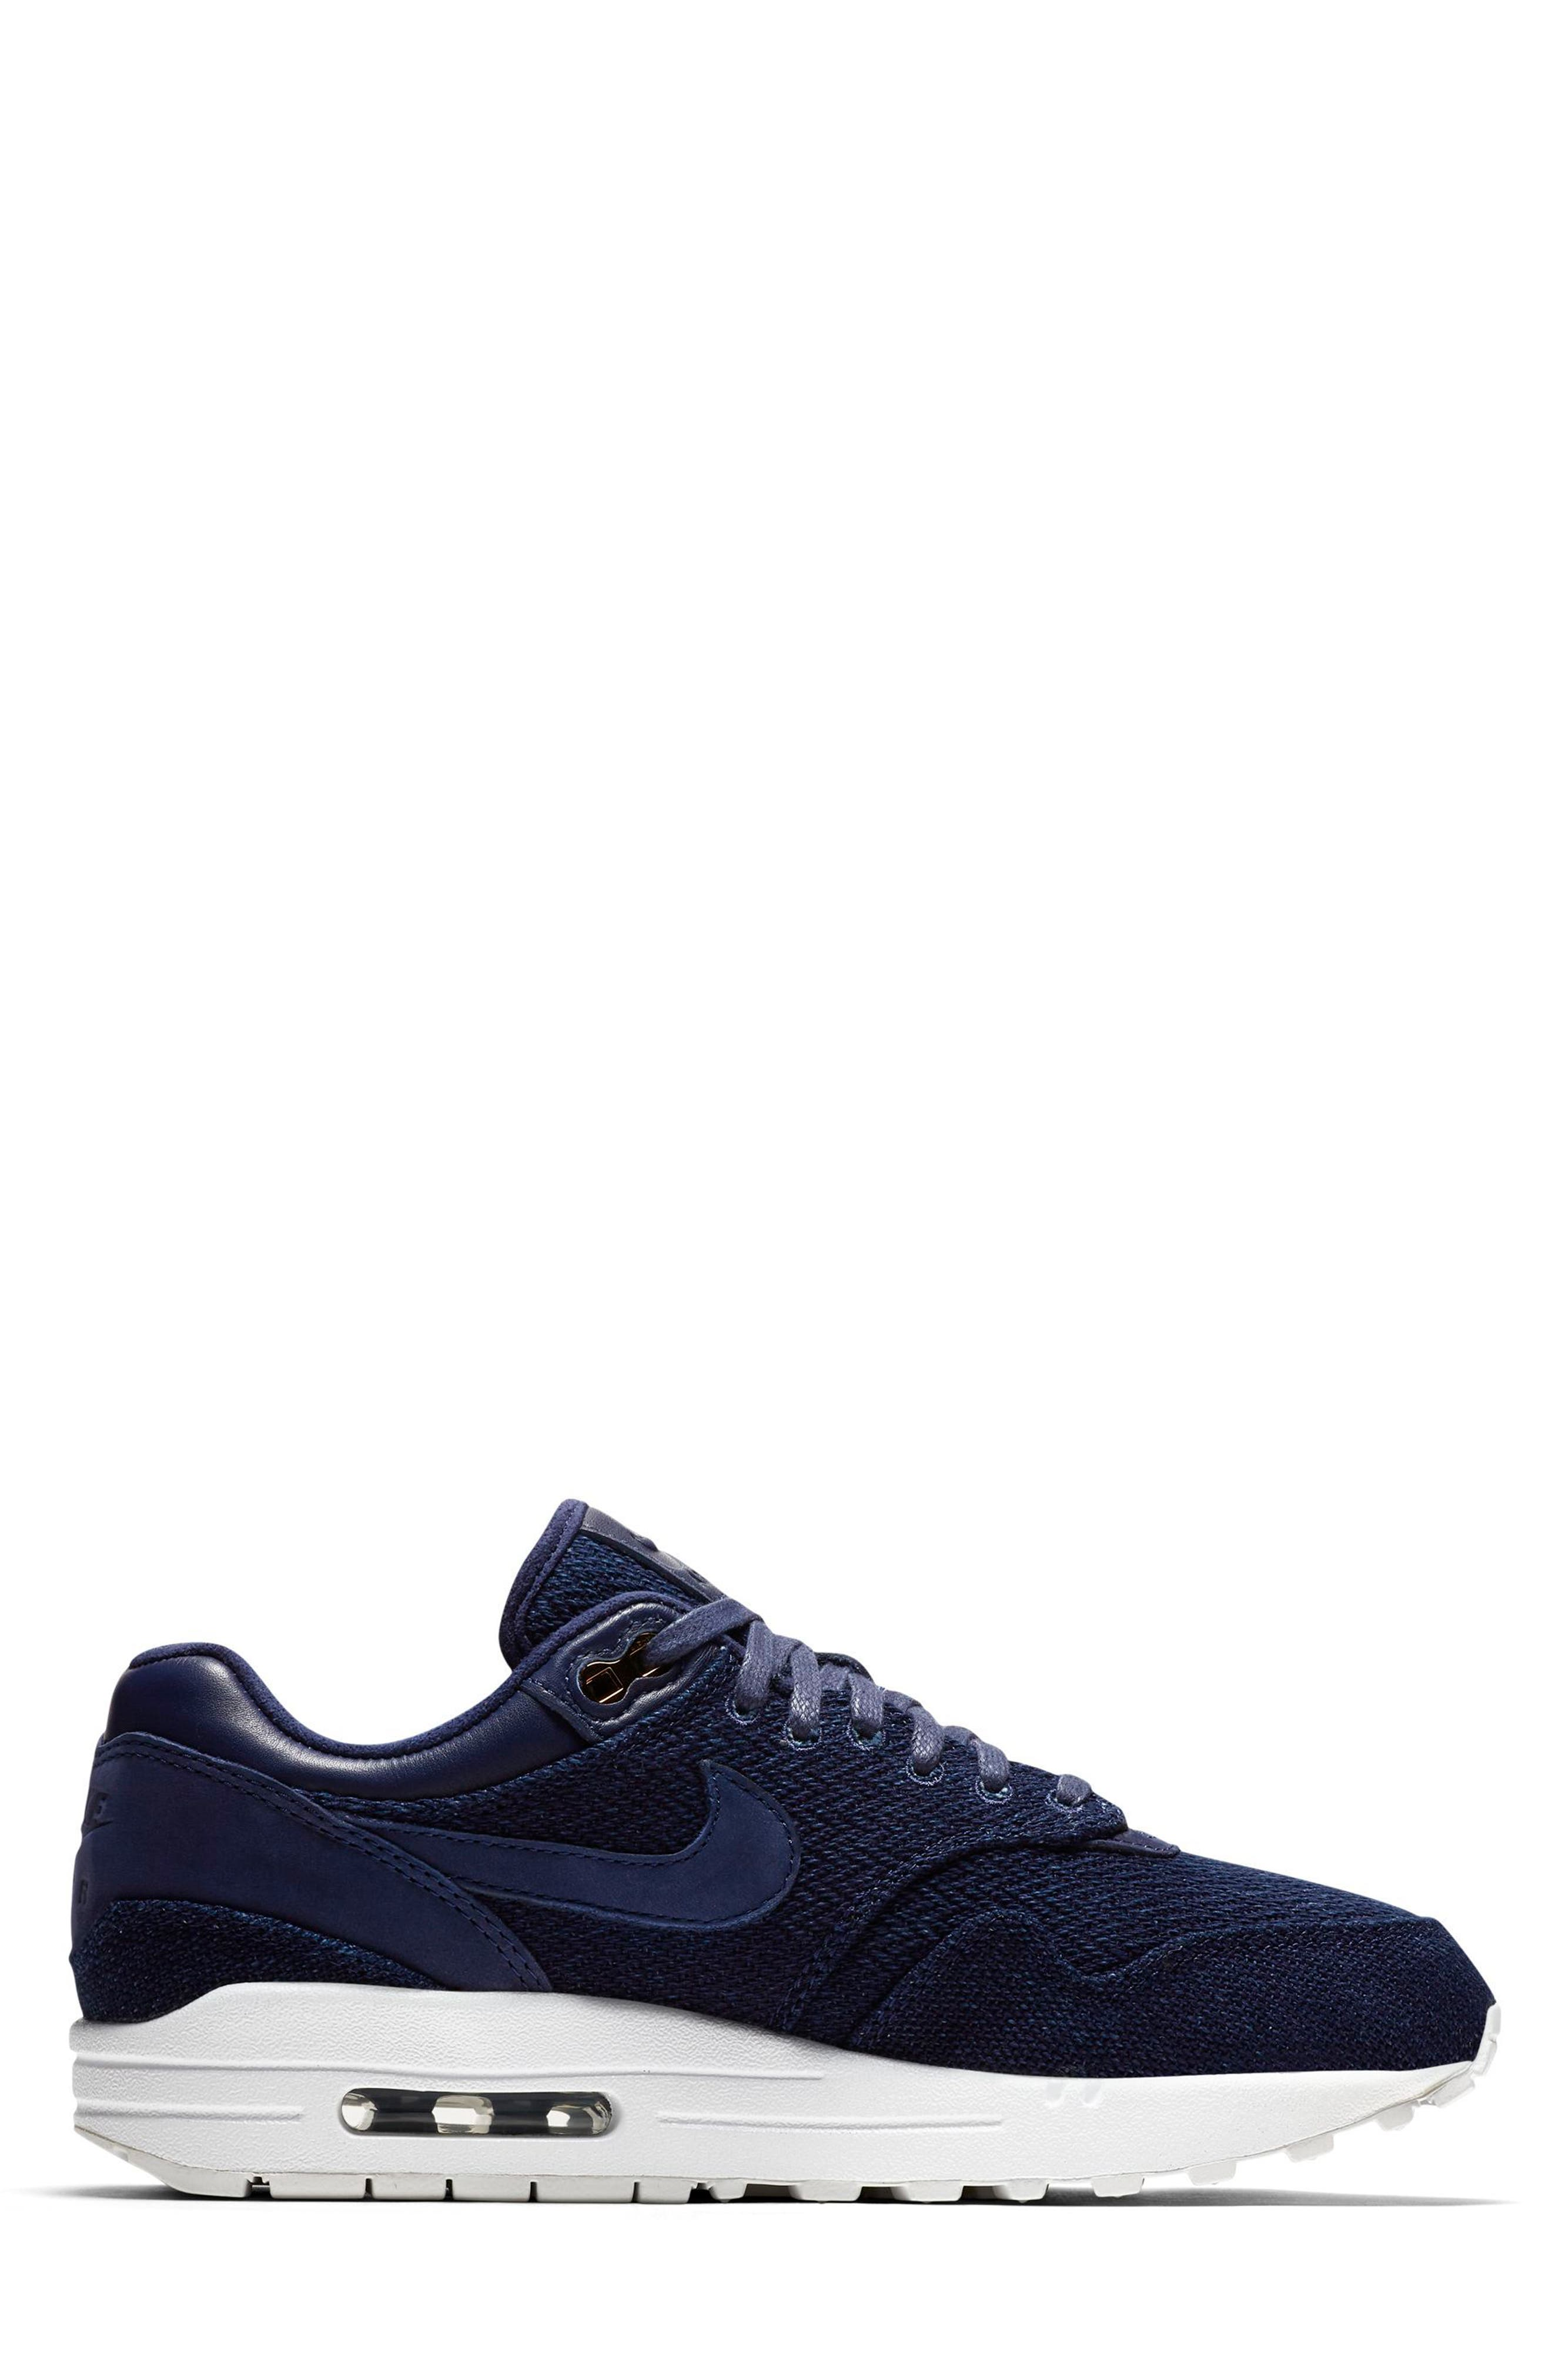 Air Max 1 Lux Sneaker,                             Alternate thumbnail 2, color,                             Binary Blue/ White/ Stout